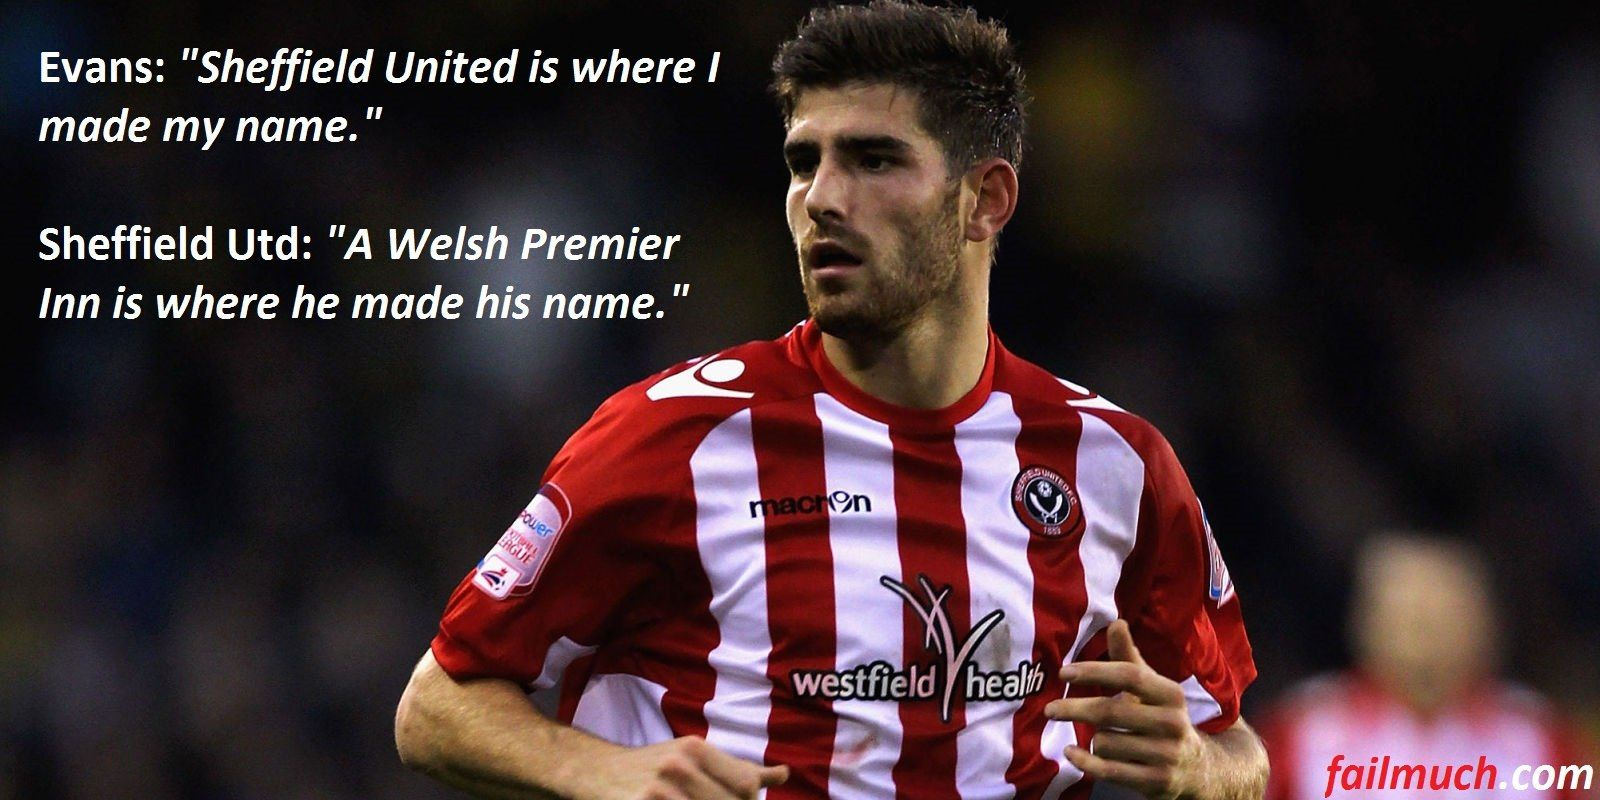 """Disgraced former footballer, Ched Evans, used a shockingly ill-advised turn of phrase, when announcing that he still harbours hopes of a return to Sheffield United: """"I'd love to go back. Since when does no mean no? Sheffield United is where I made my name."""" A Sheffield United spokesman refuted Evans' claim: """"A Welsh Premier Innis […]"""